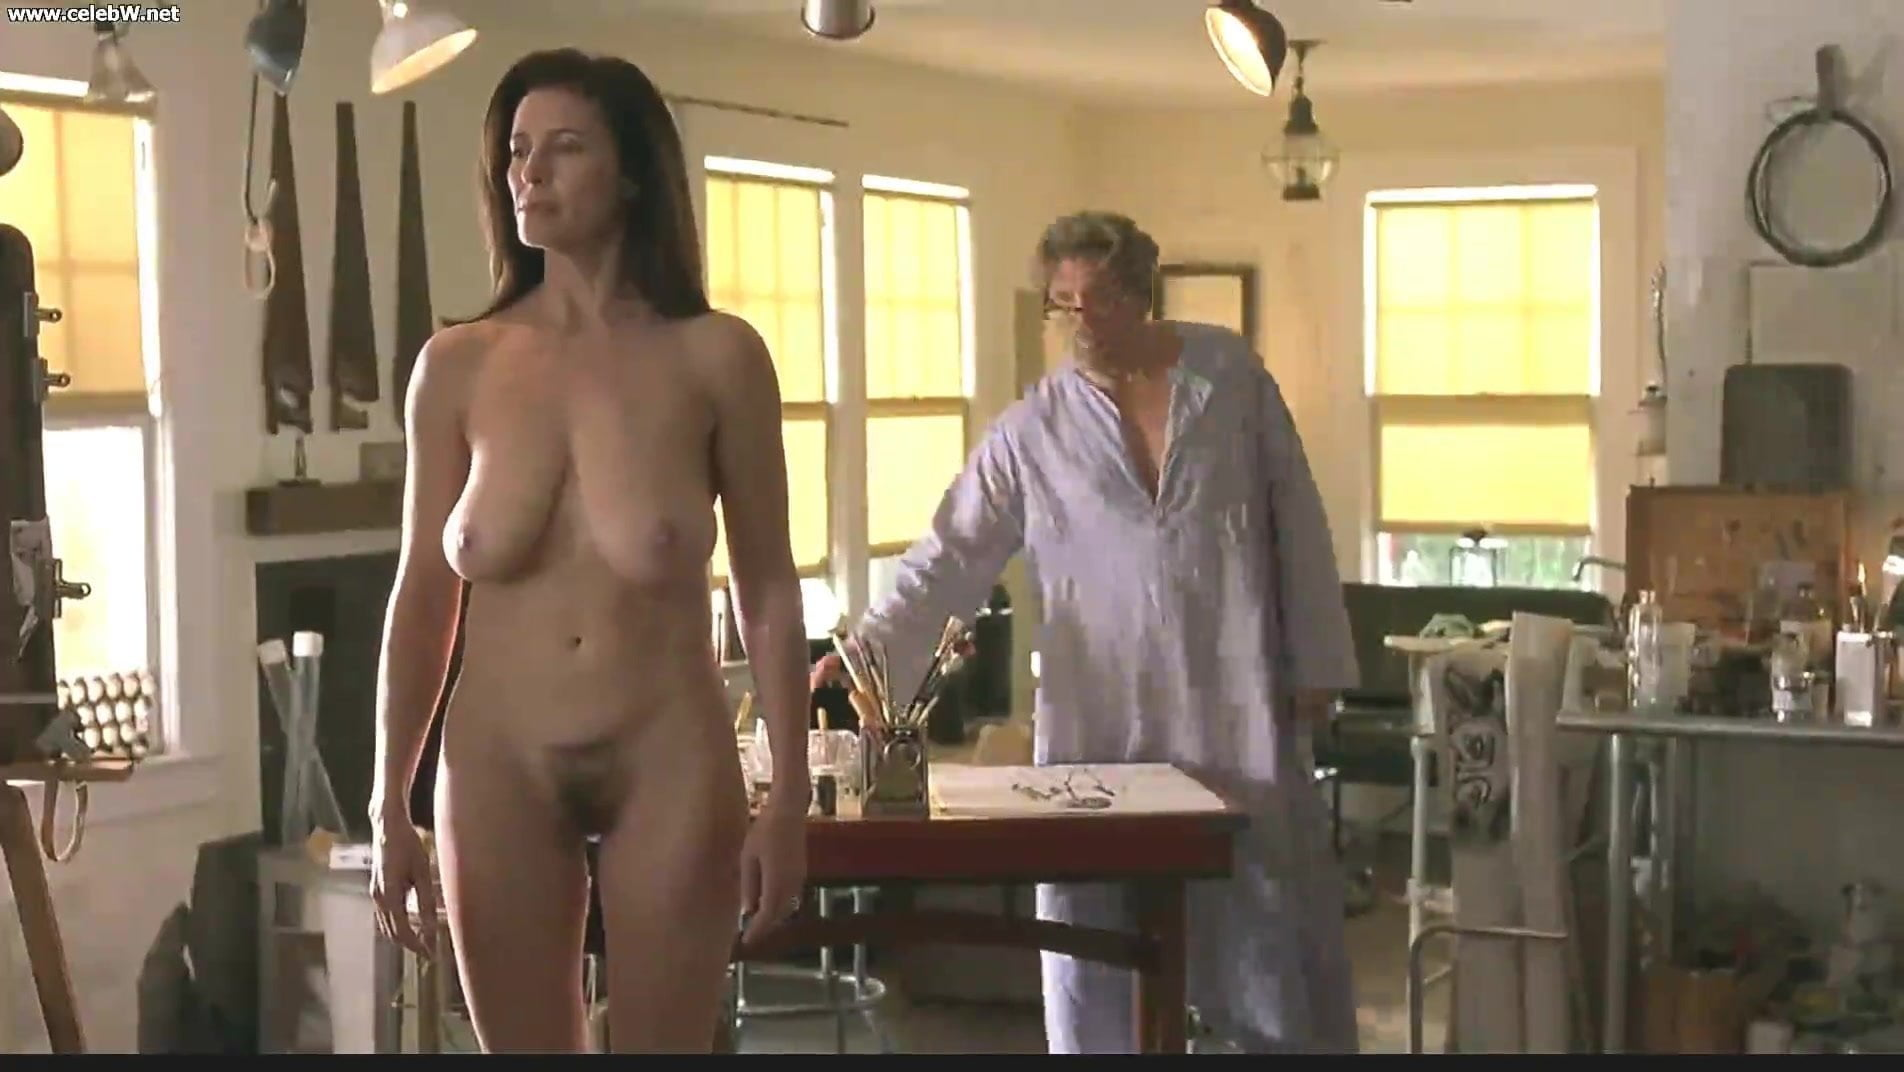 mimi-rogers-free-naked-videos-hot-bulgarian-naked-chicks